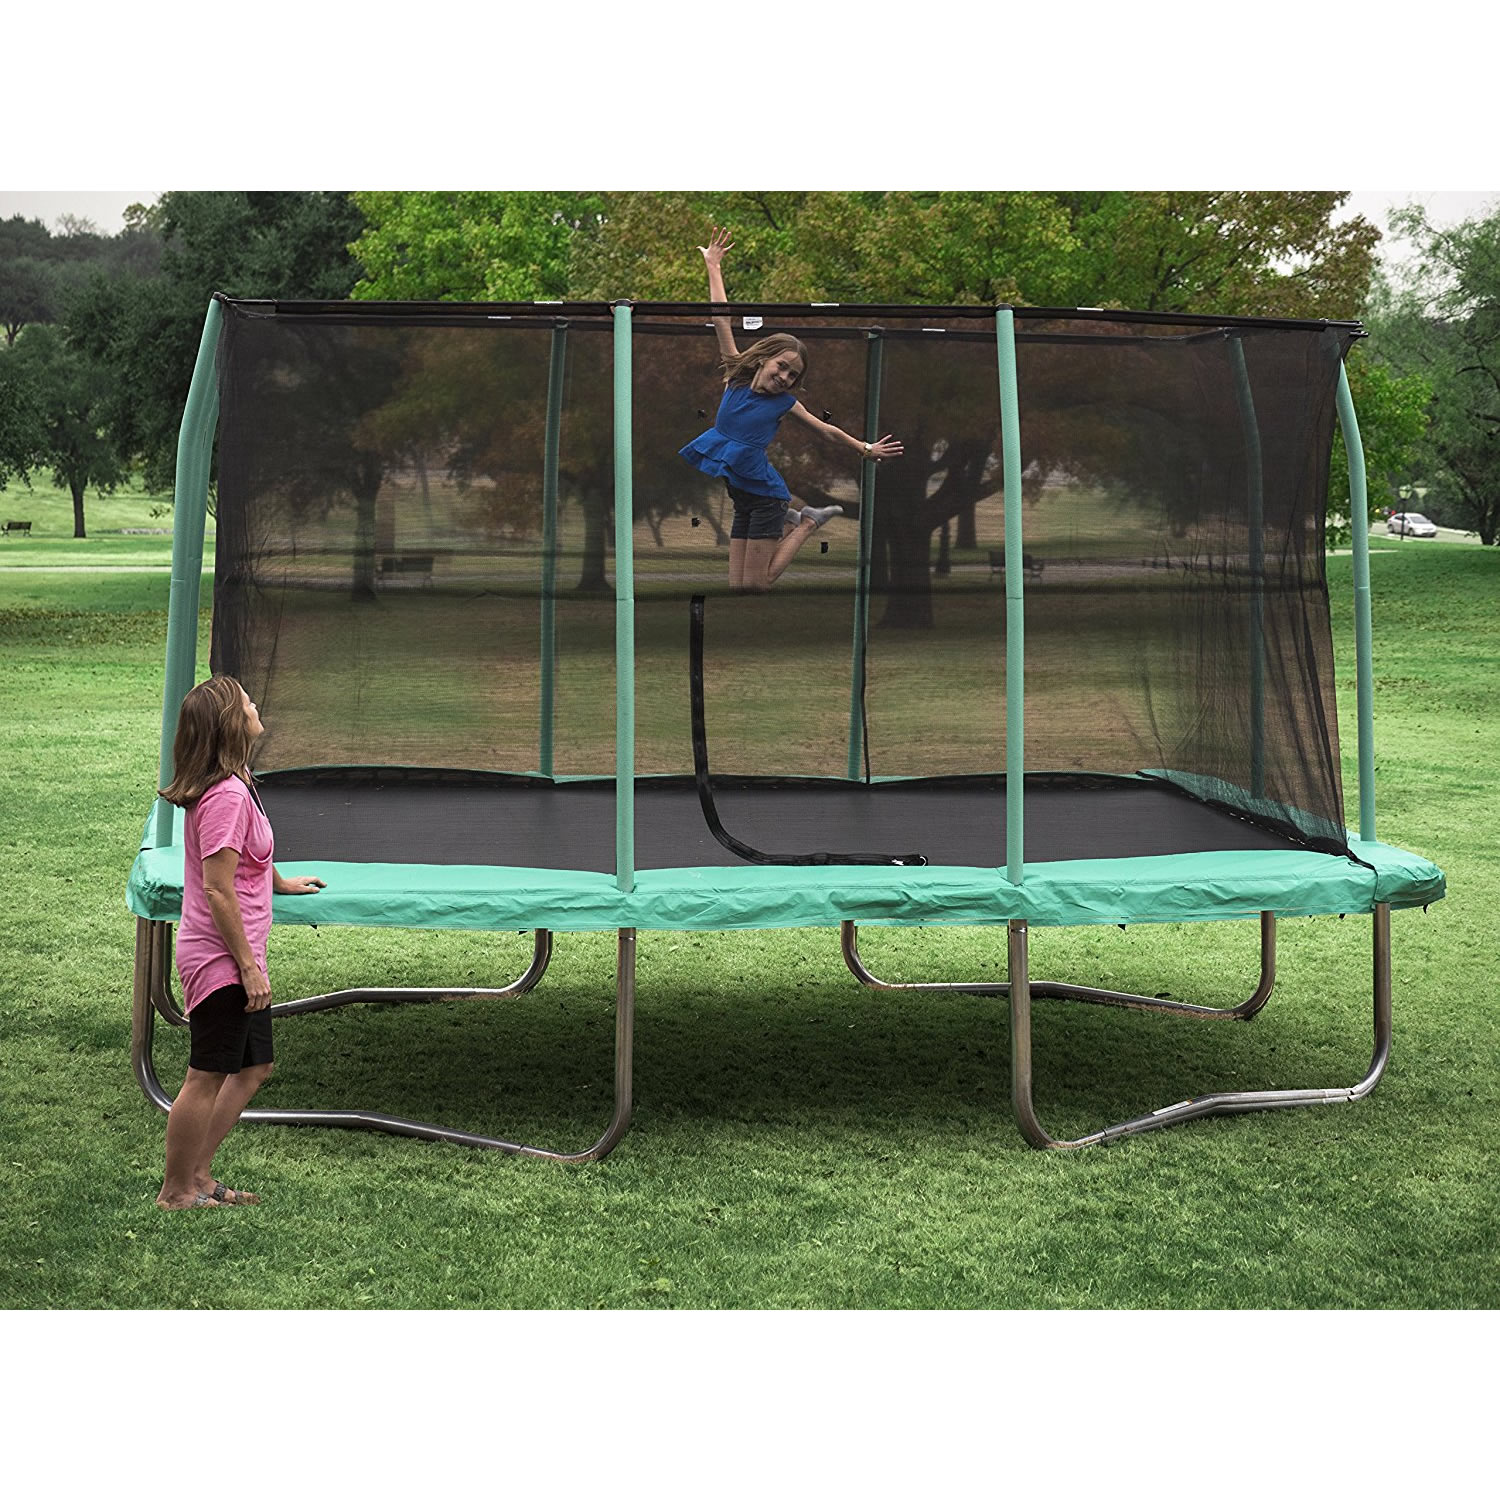 Trampolin 3 5 Meter What S The Best Trampoline Size Price Guide Recommendations